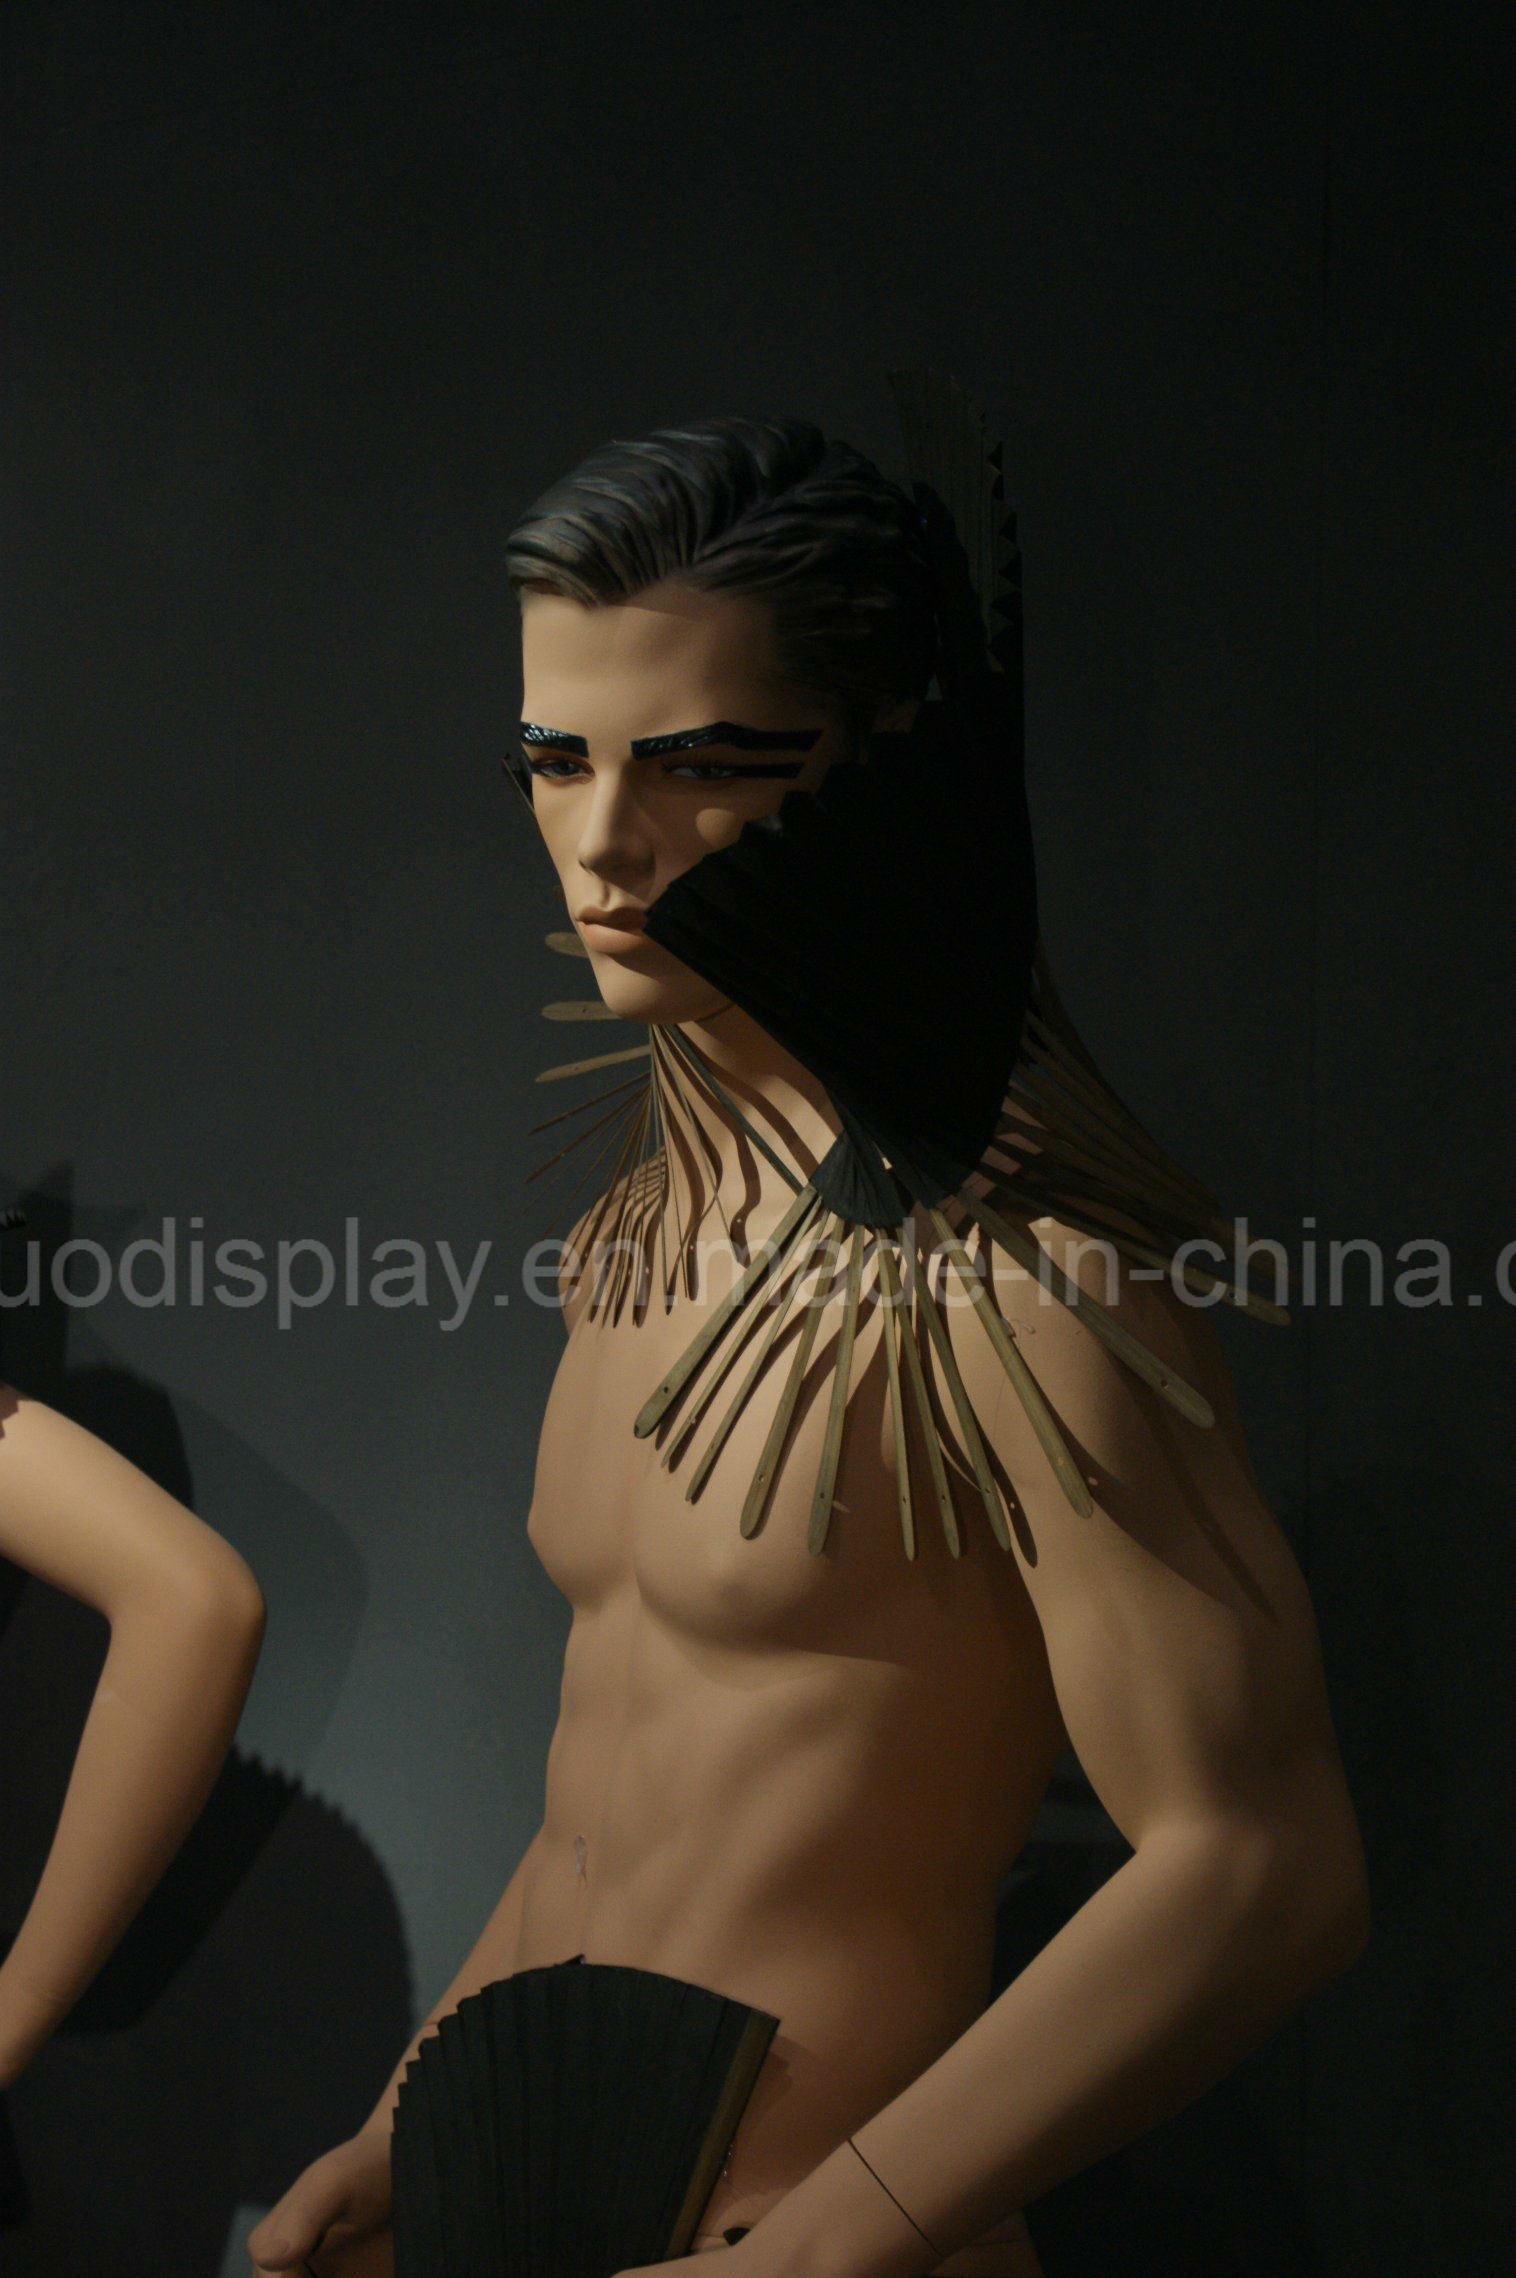 Realistic Male Dress Form Mannequin for Windows Display